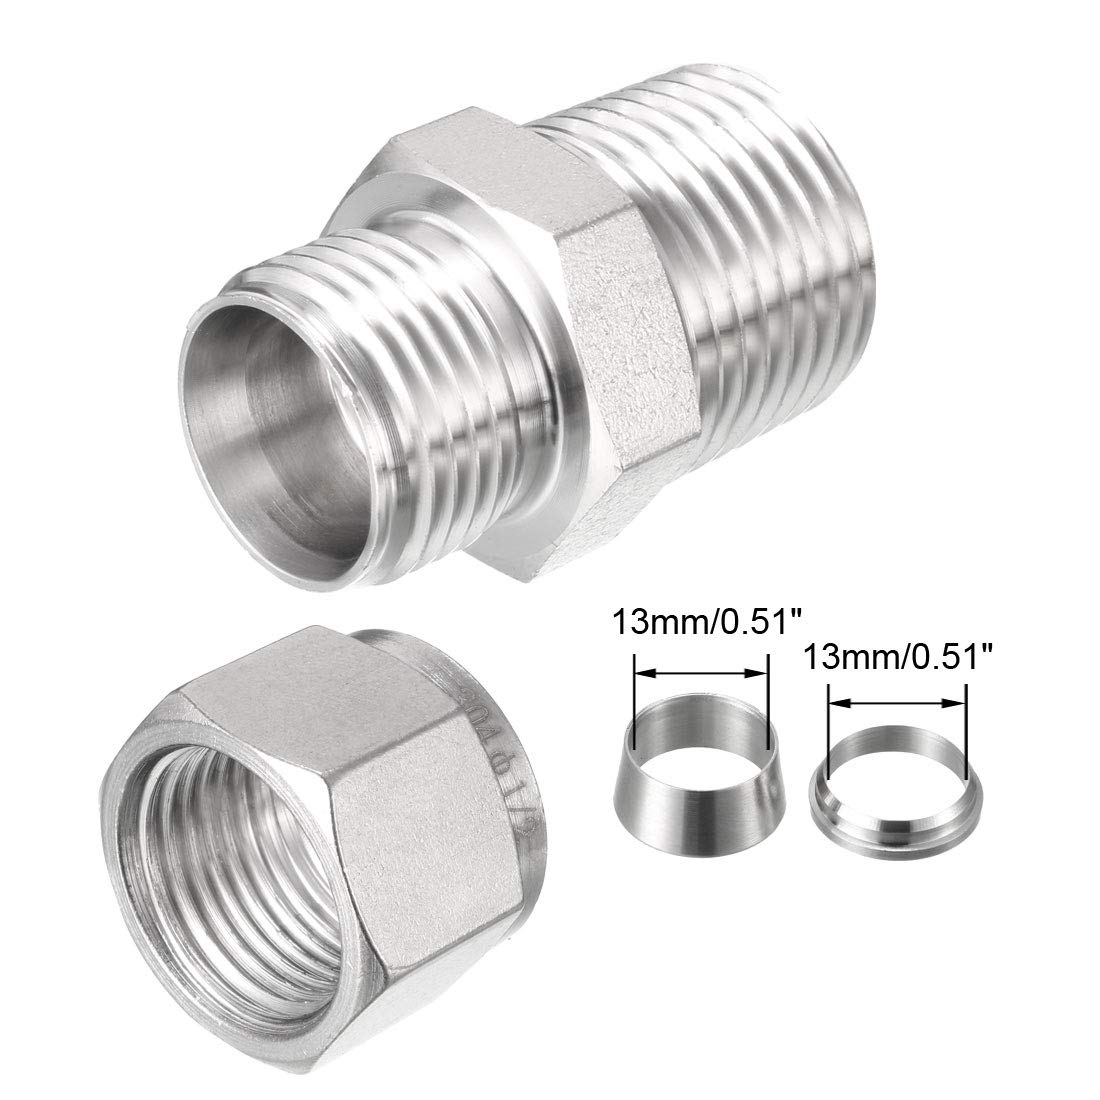 uxcell Stainless Steel Compression Tube Fitting 1//2-inch NPT Male x Ф1//2-inch Tube OD